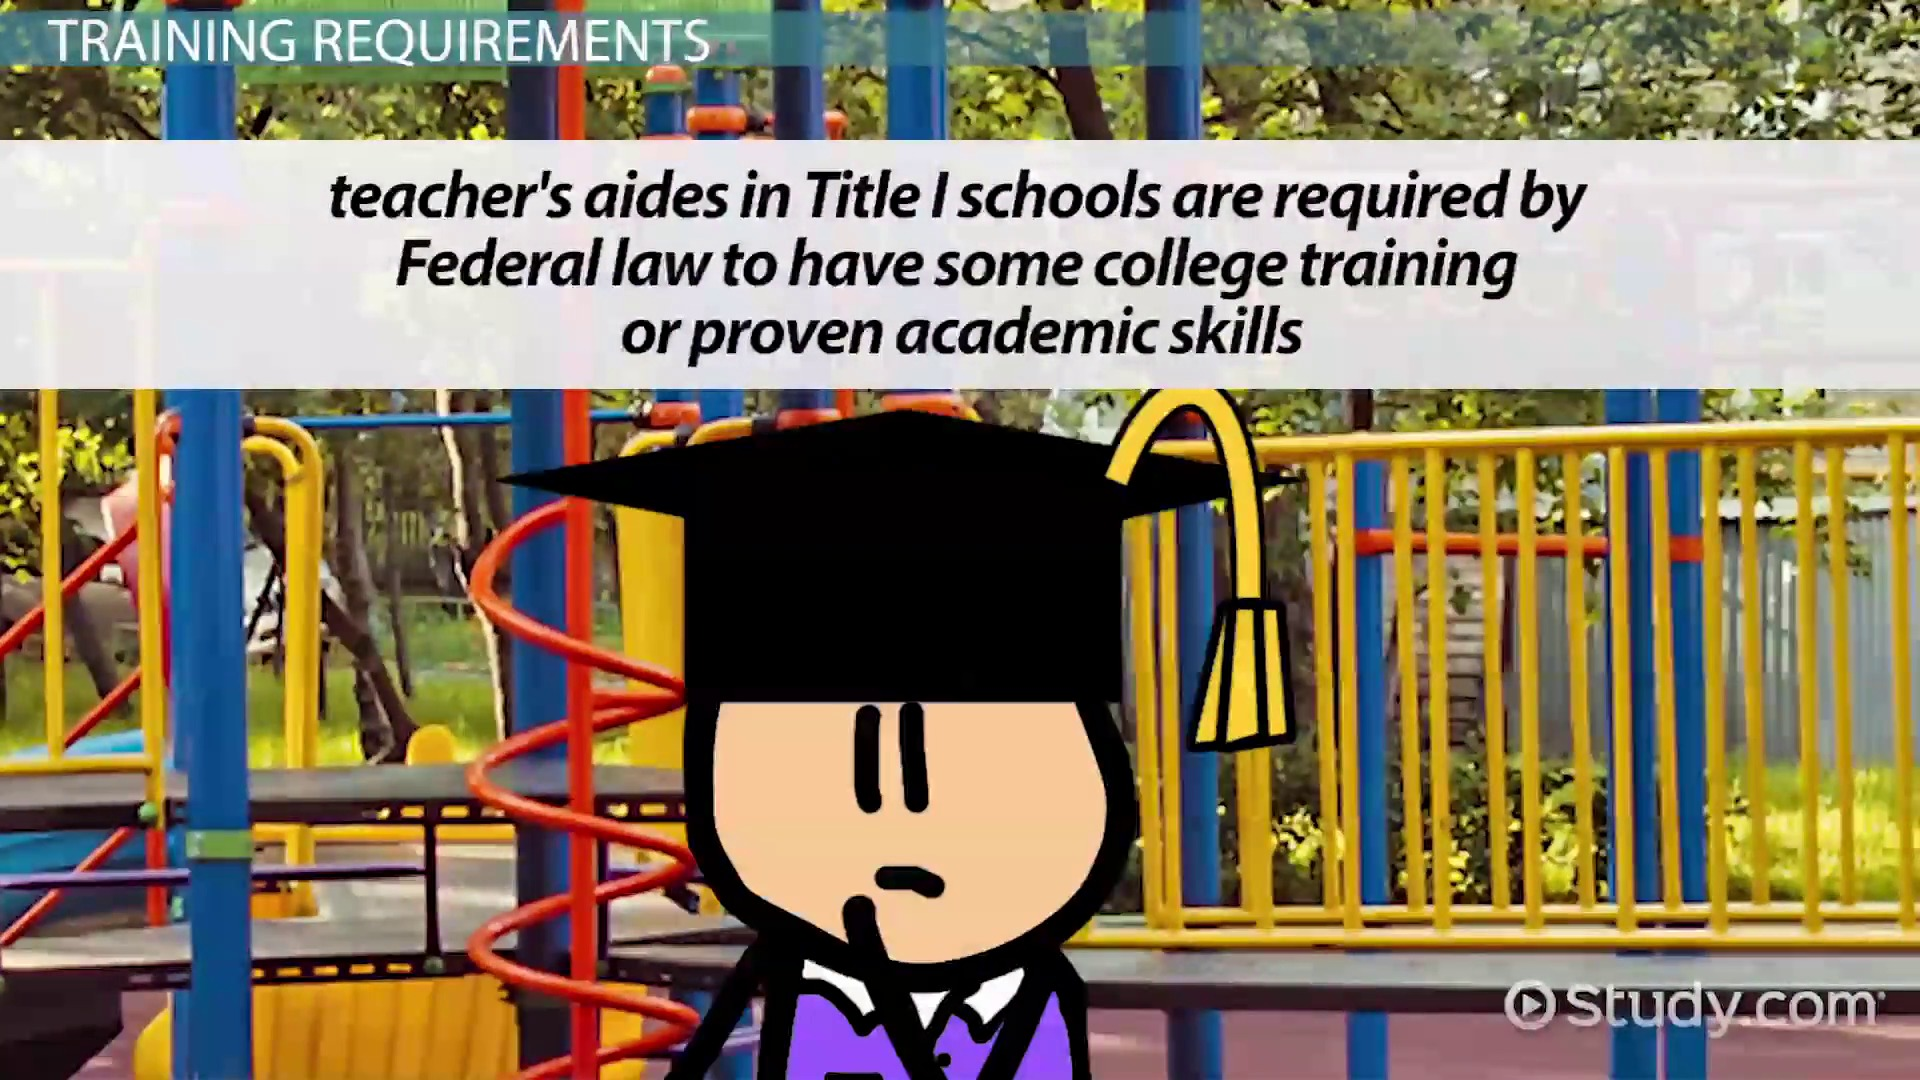 training requirements to be a teacher s aide